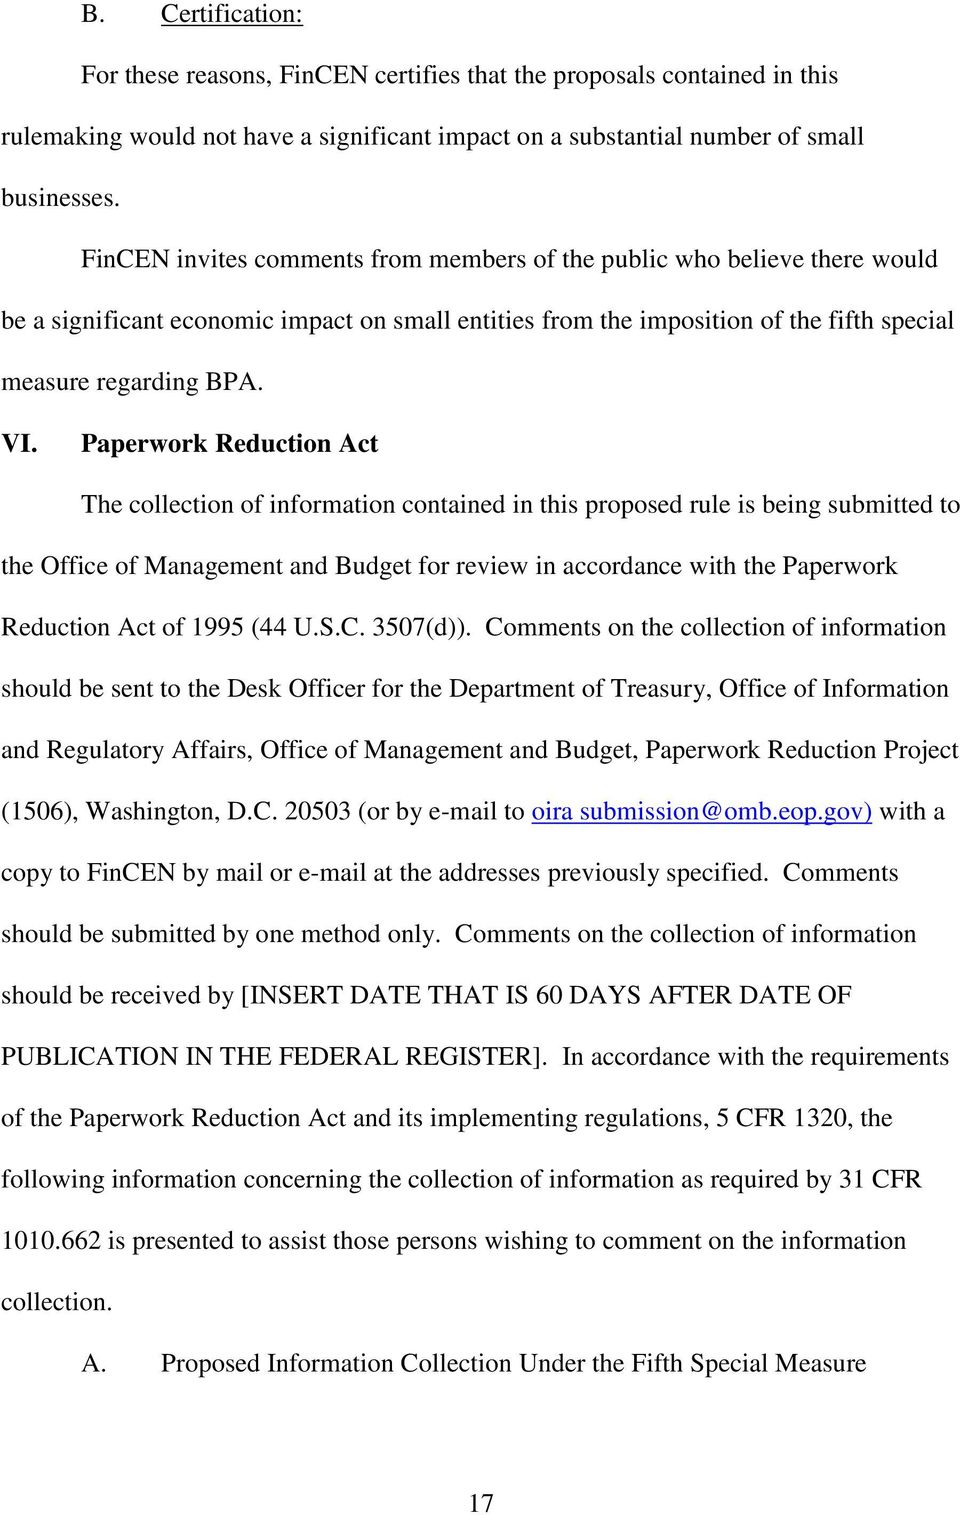 Paperwork Reduction Act The collection of information contained in this proposed rule is being submitted to the Office of Management and Budget for review in accordance with the Paperwork Reduction